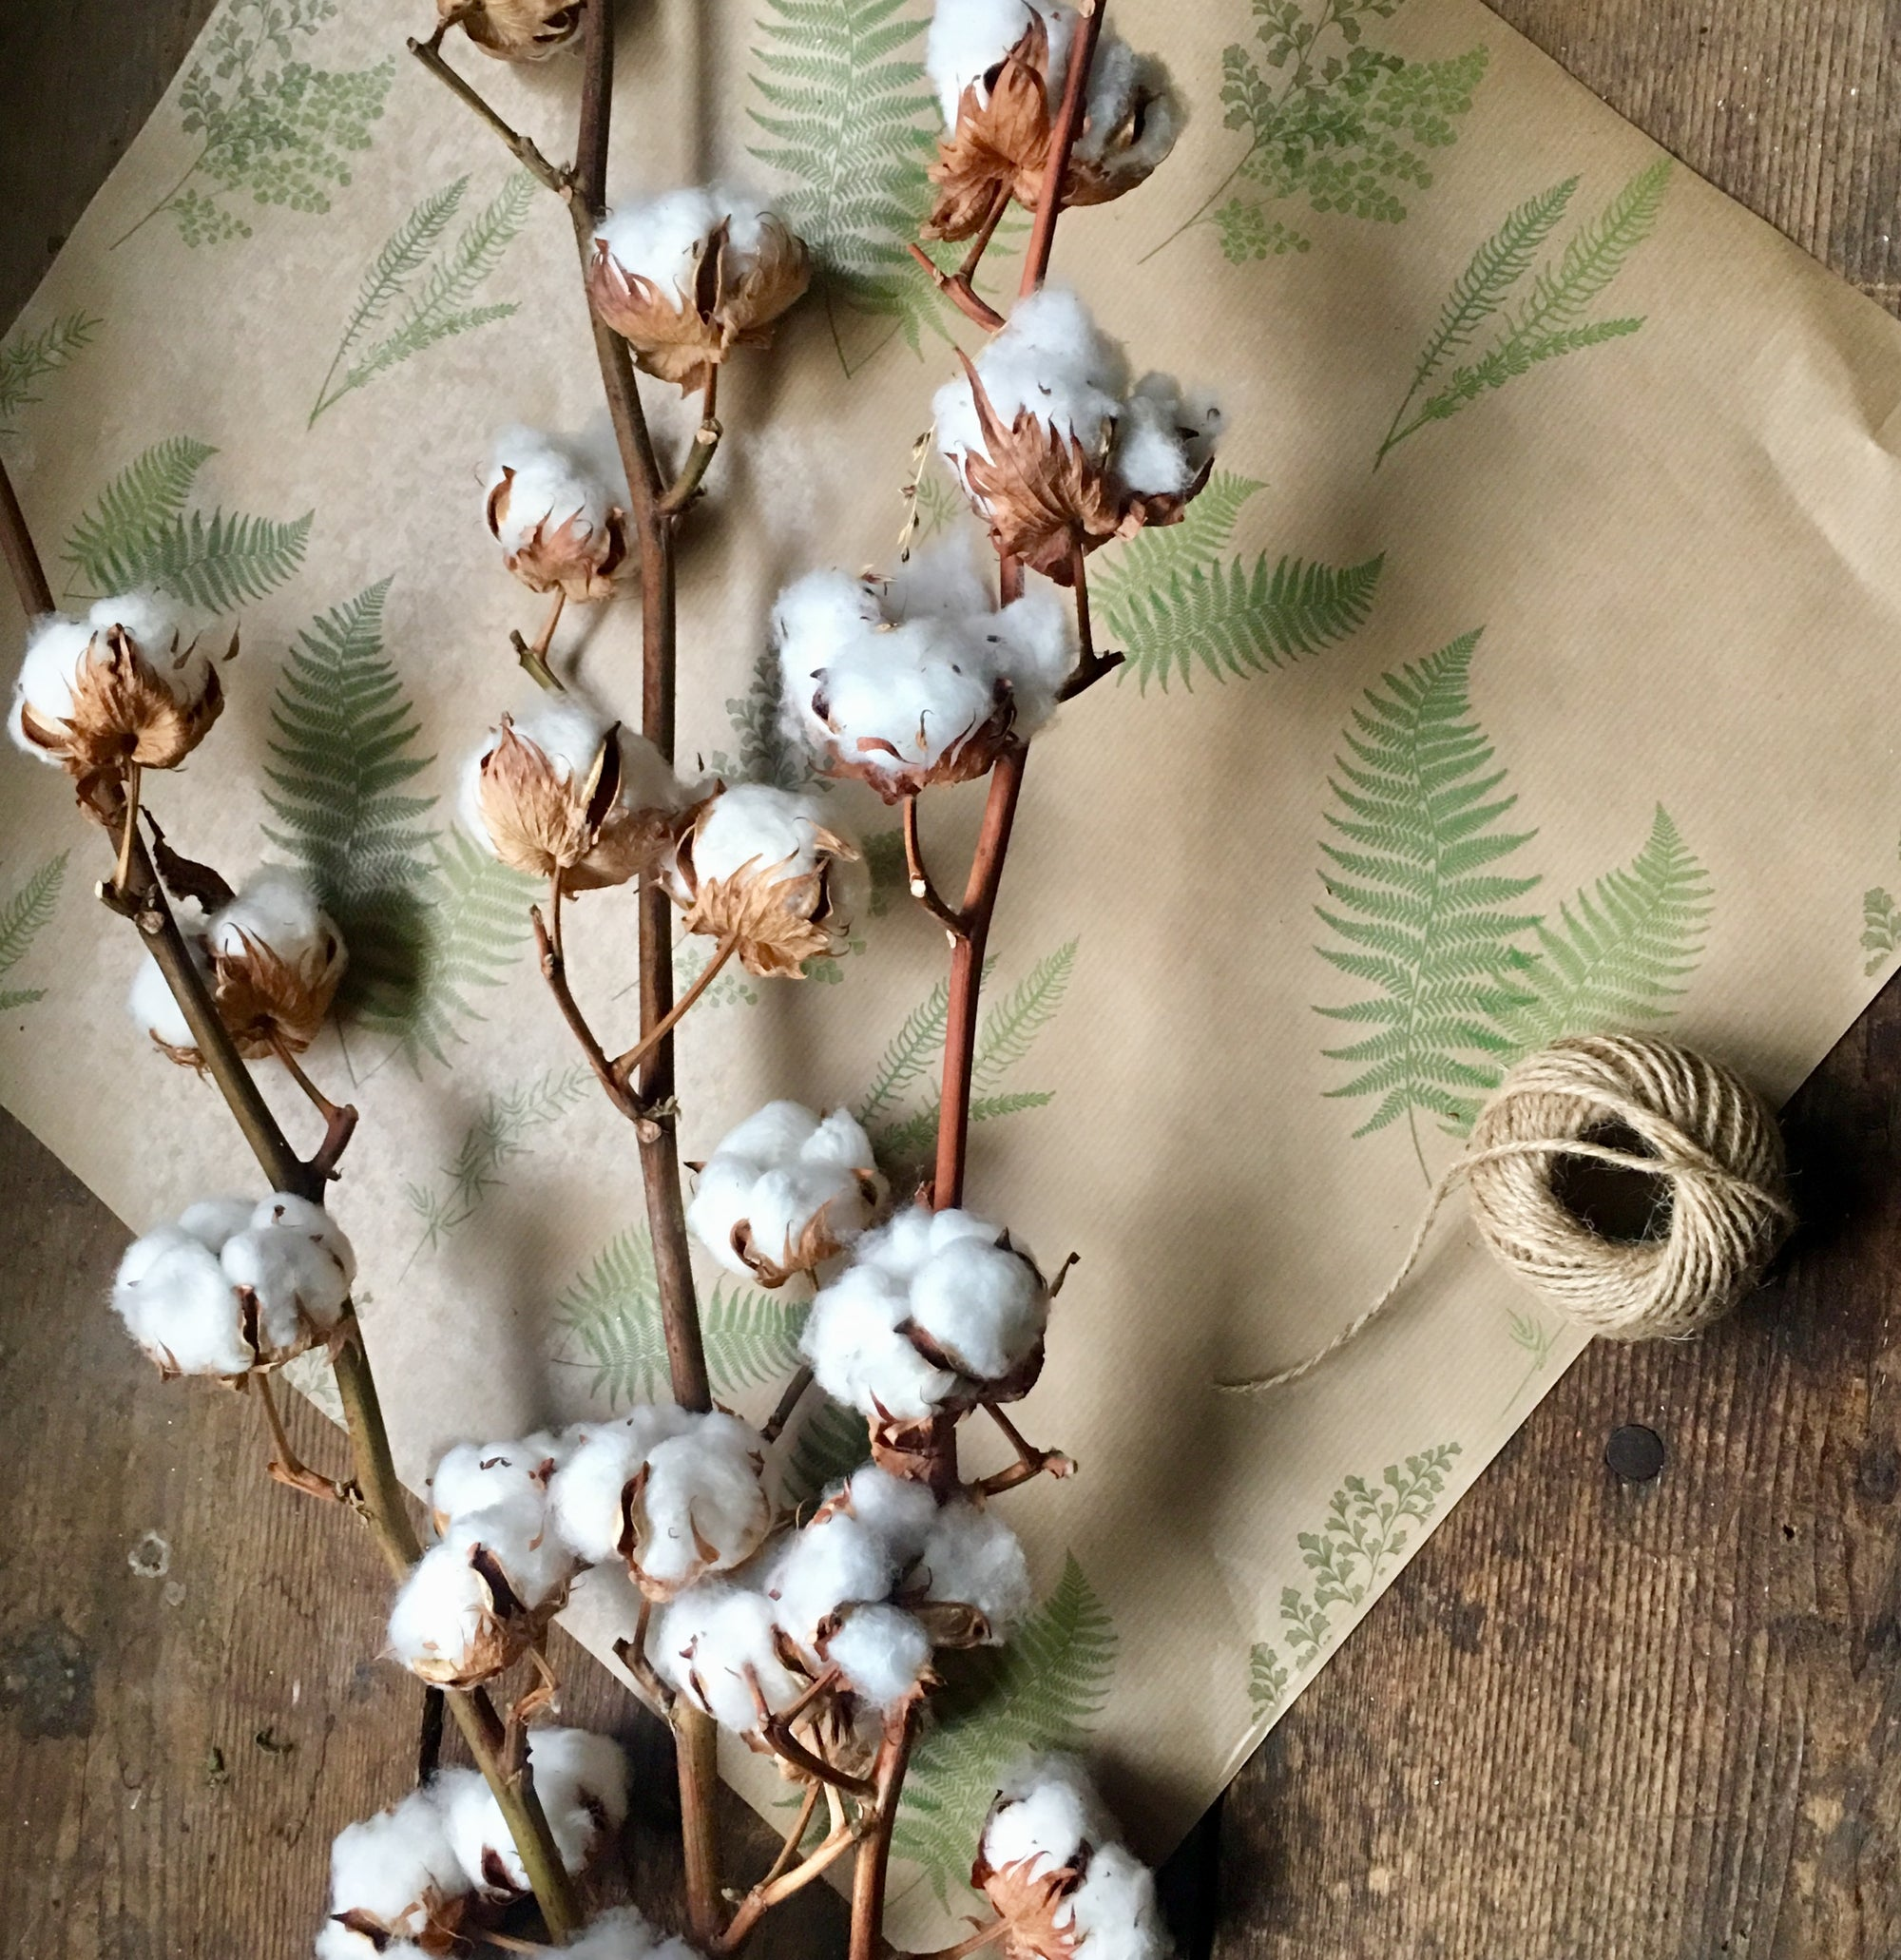 Dried Natural Cotton Stems Smoked Birch